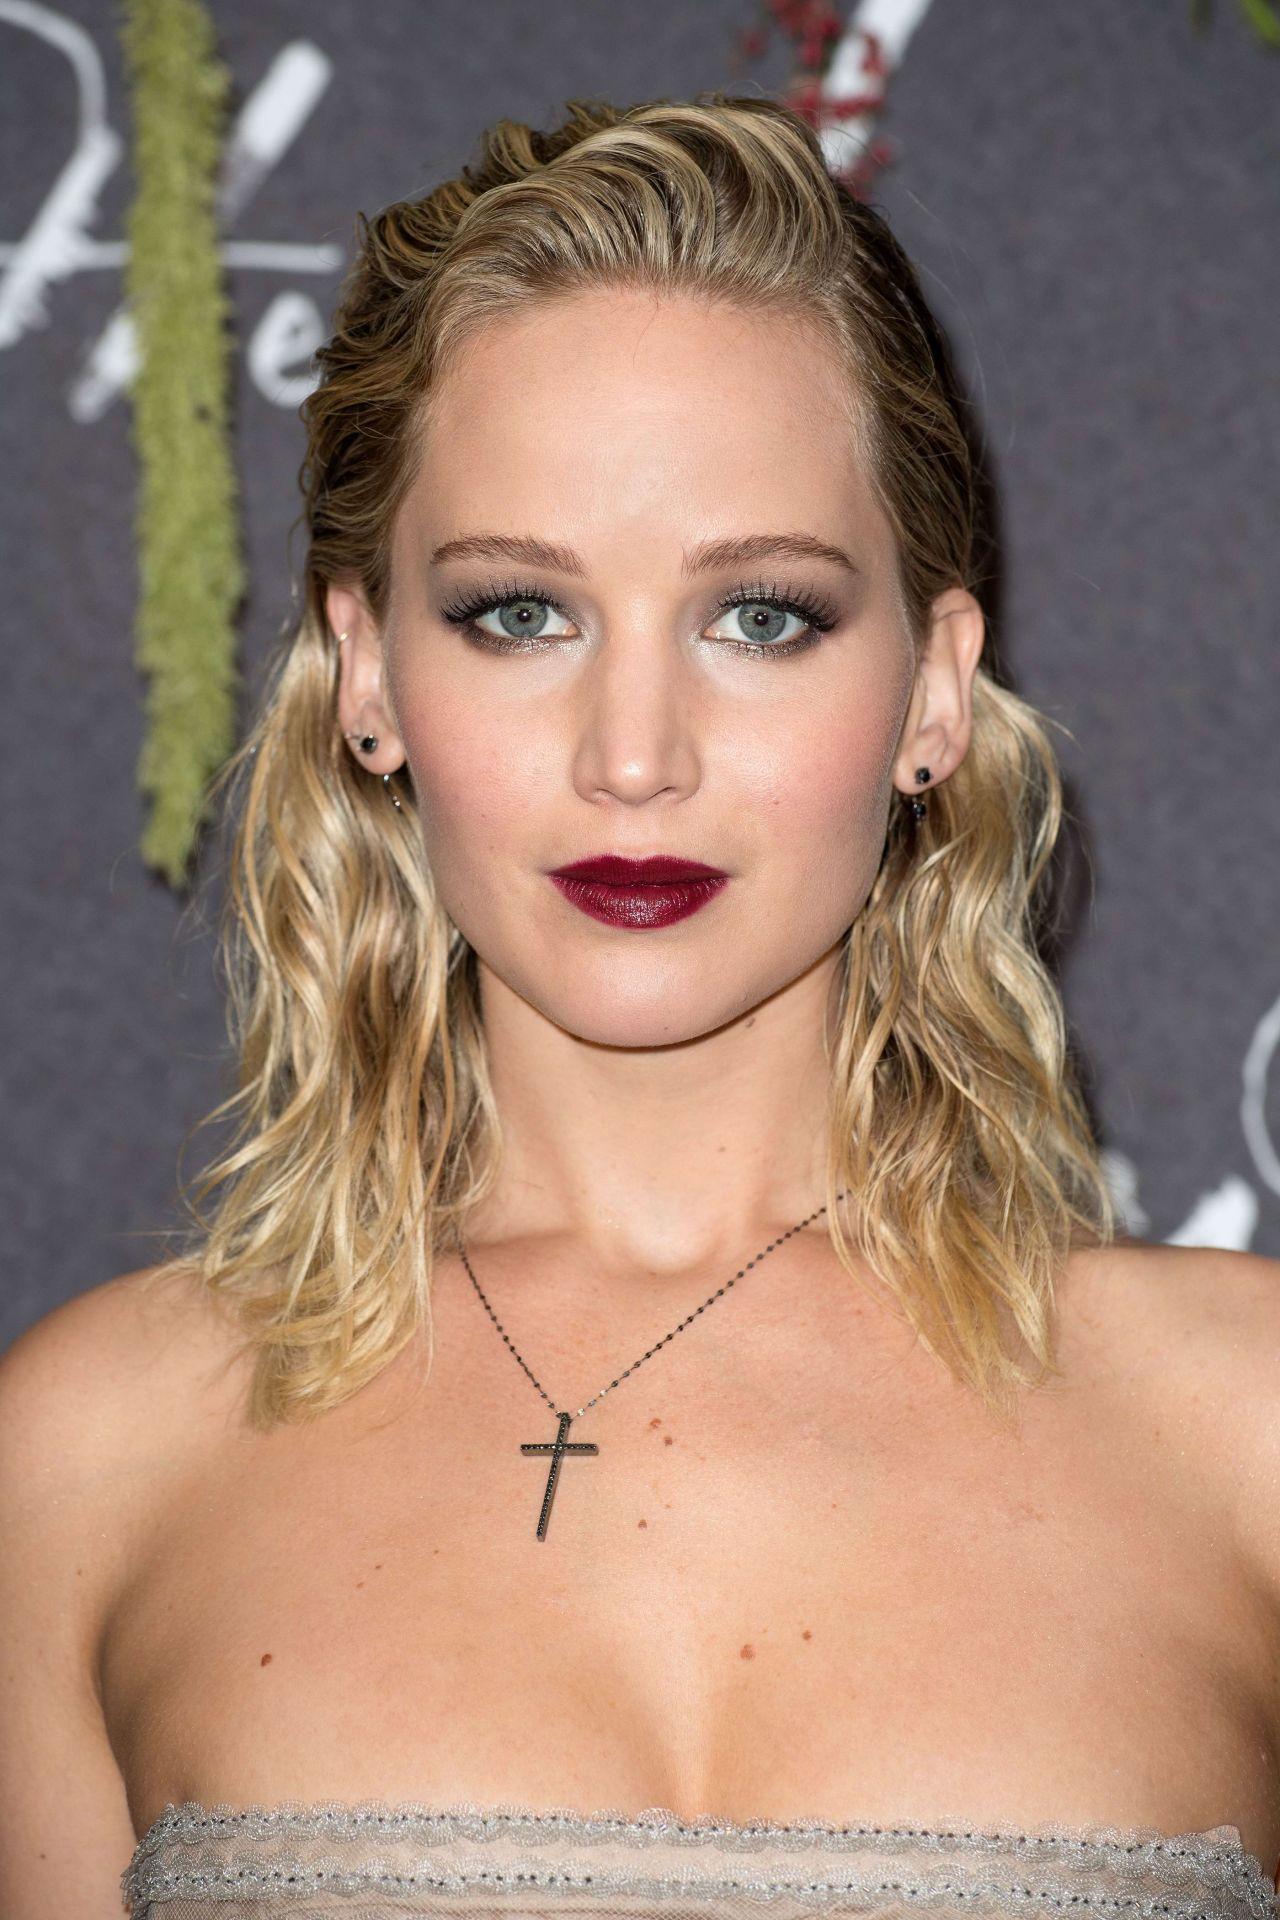 Jennifer Lawrence Jenniferlawrence Mother Premiere In Paris 07 09 2017 Http Ift Tt 2fc7zcm Famosas Guapas Actrices Hermosas Actrices Hollywood